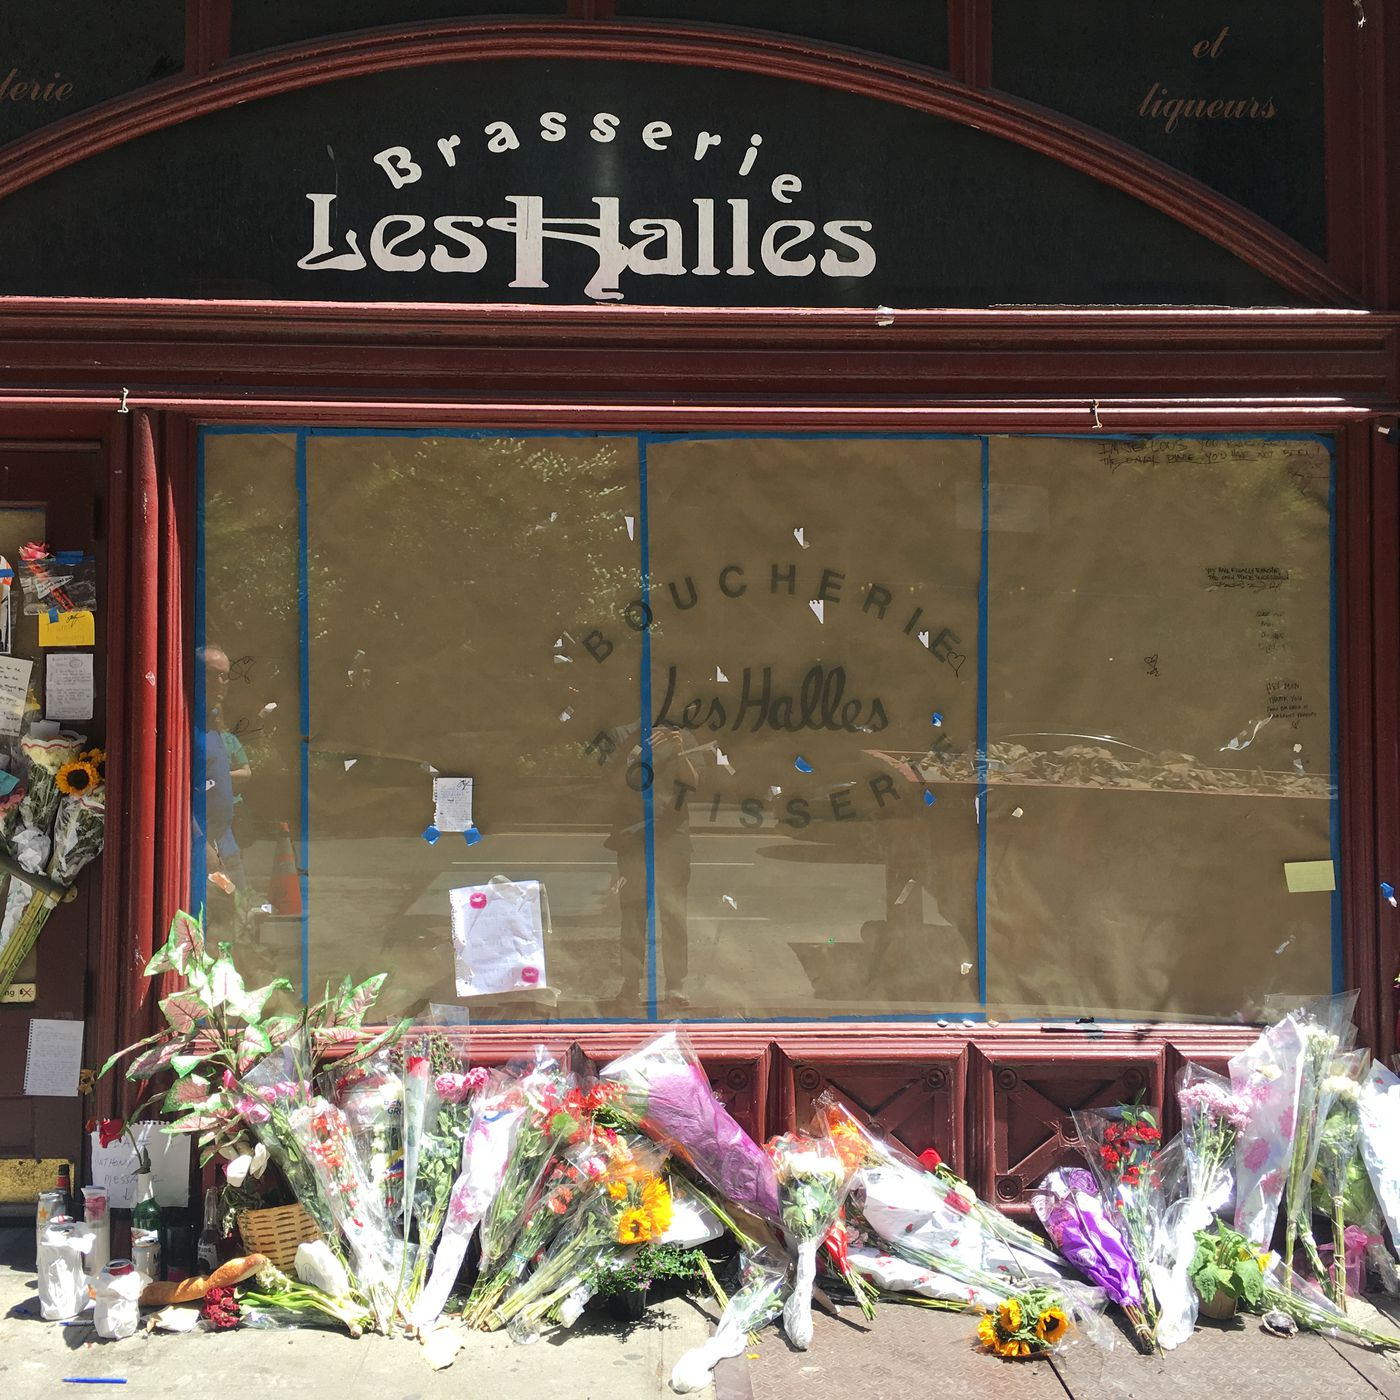 Anthony Bourdains Les Halles Memorial Notes Will Be Preserved